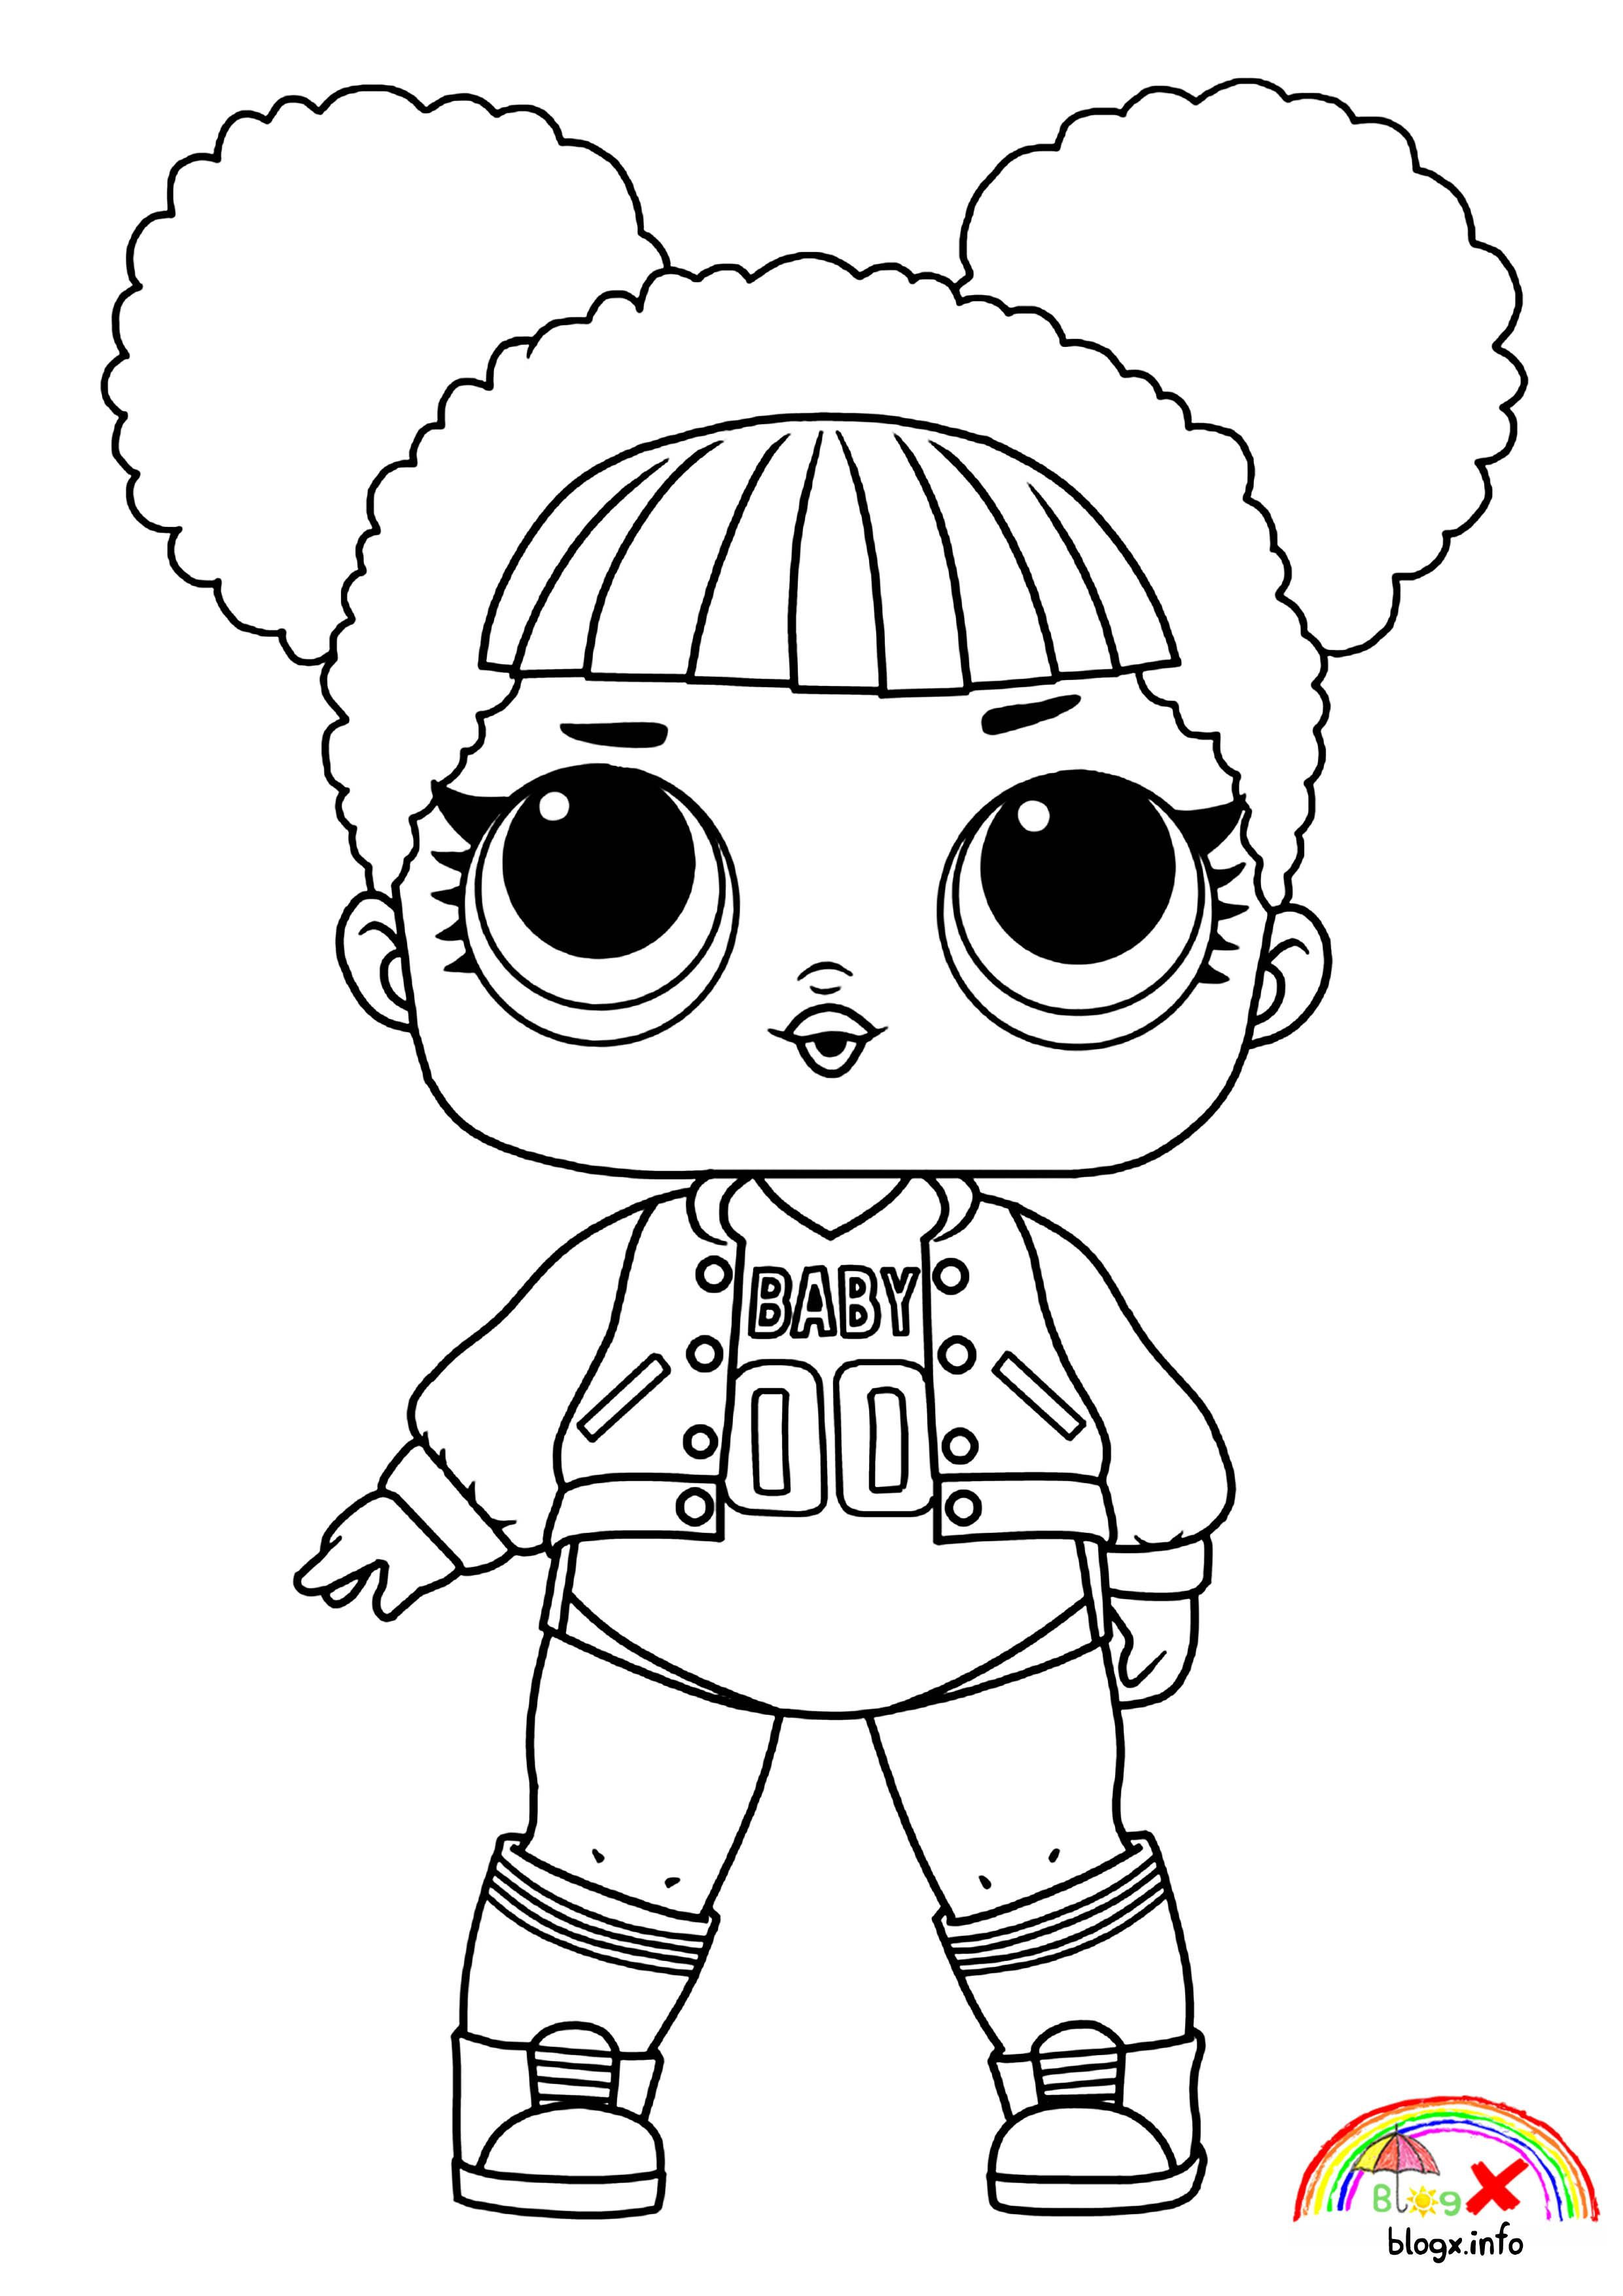 Lol Dolls Music Series Coloring Page Lol Dolls Cute Coloring Pages Disney Princess Coloring Pages